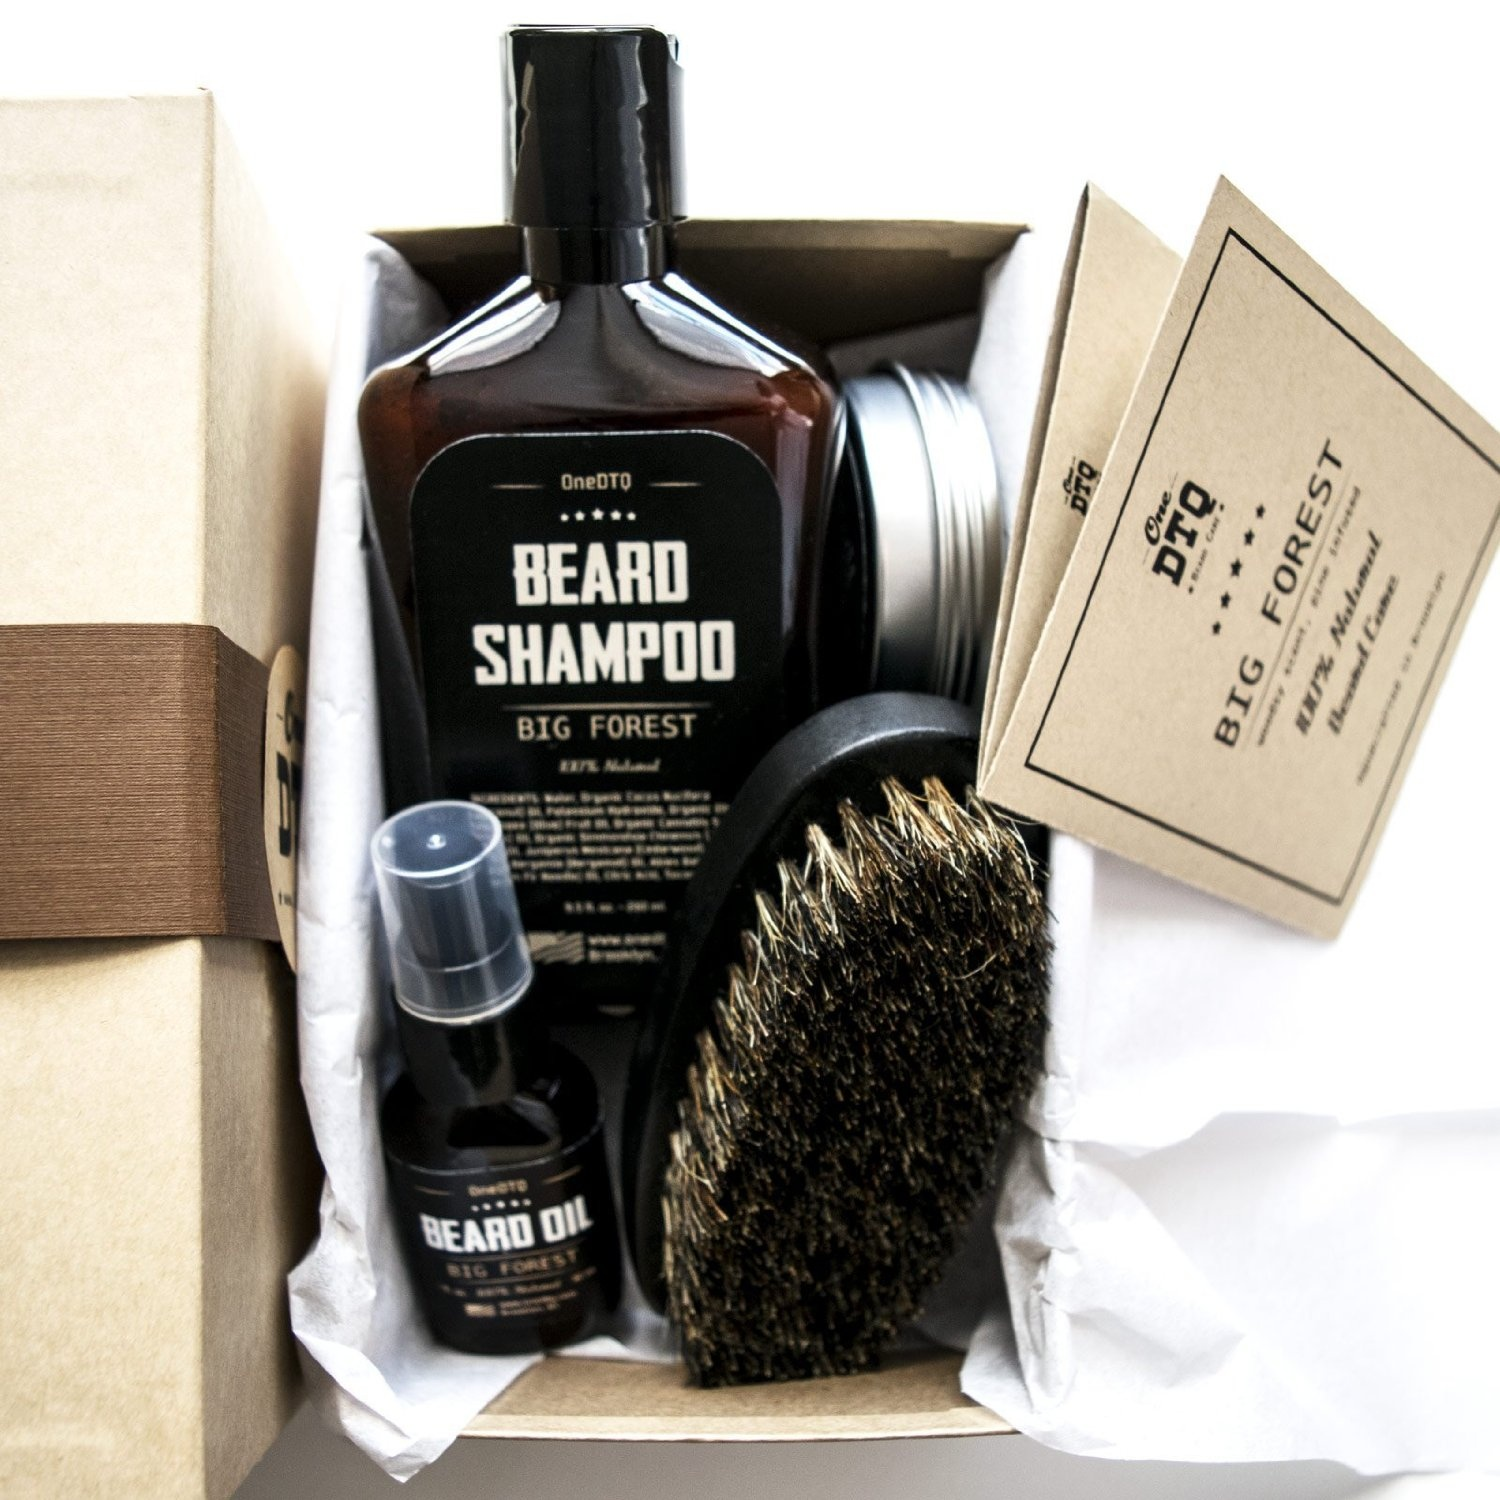 big forest beard grooming kit beard growth beard shampoo beard oil beard balm beard brush. Black Bedroom Furniture Sets. Home Design Ideas